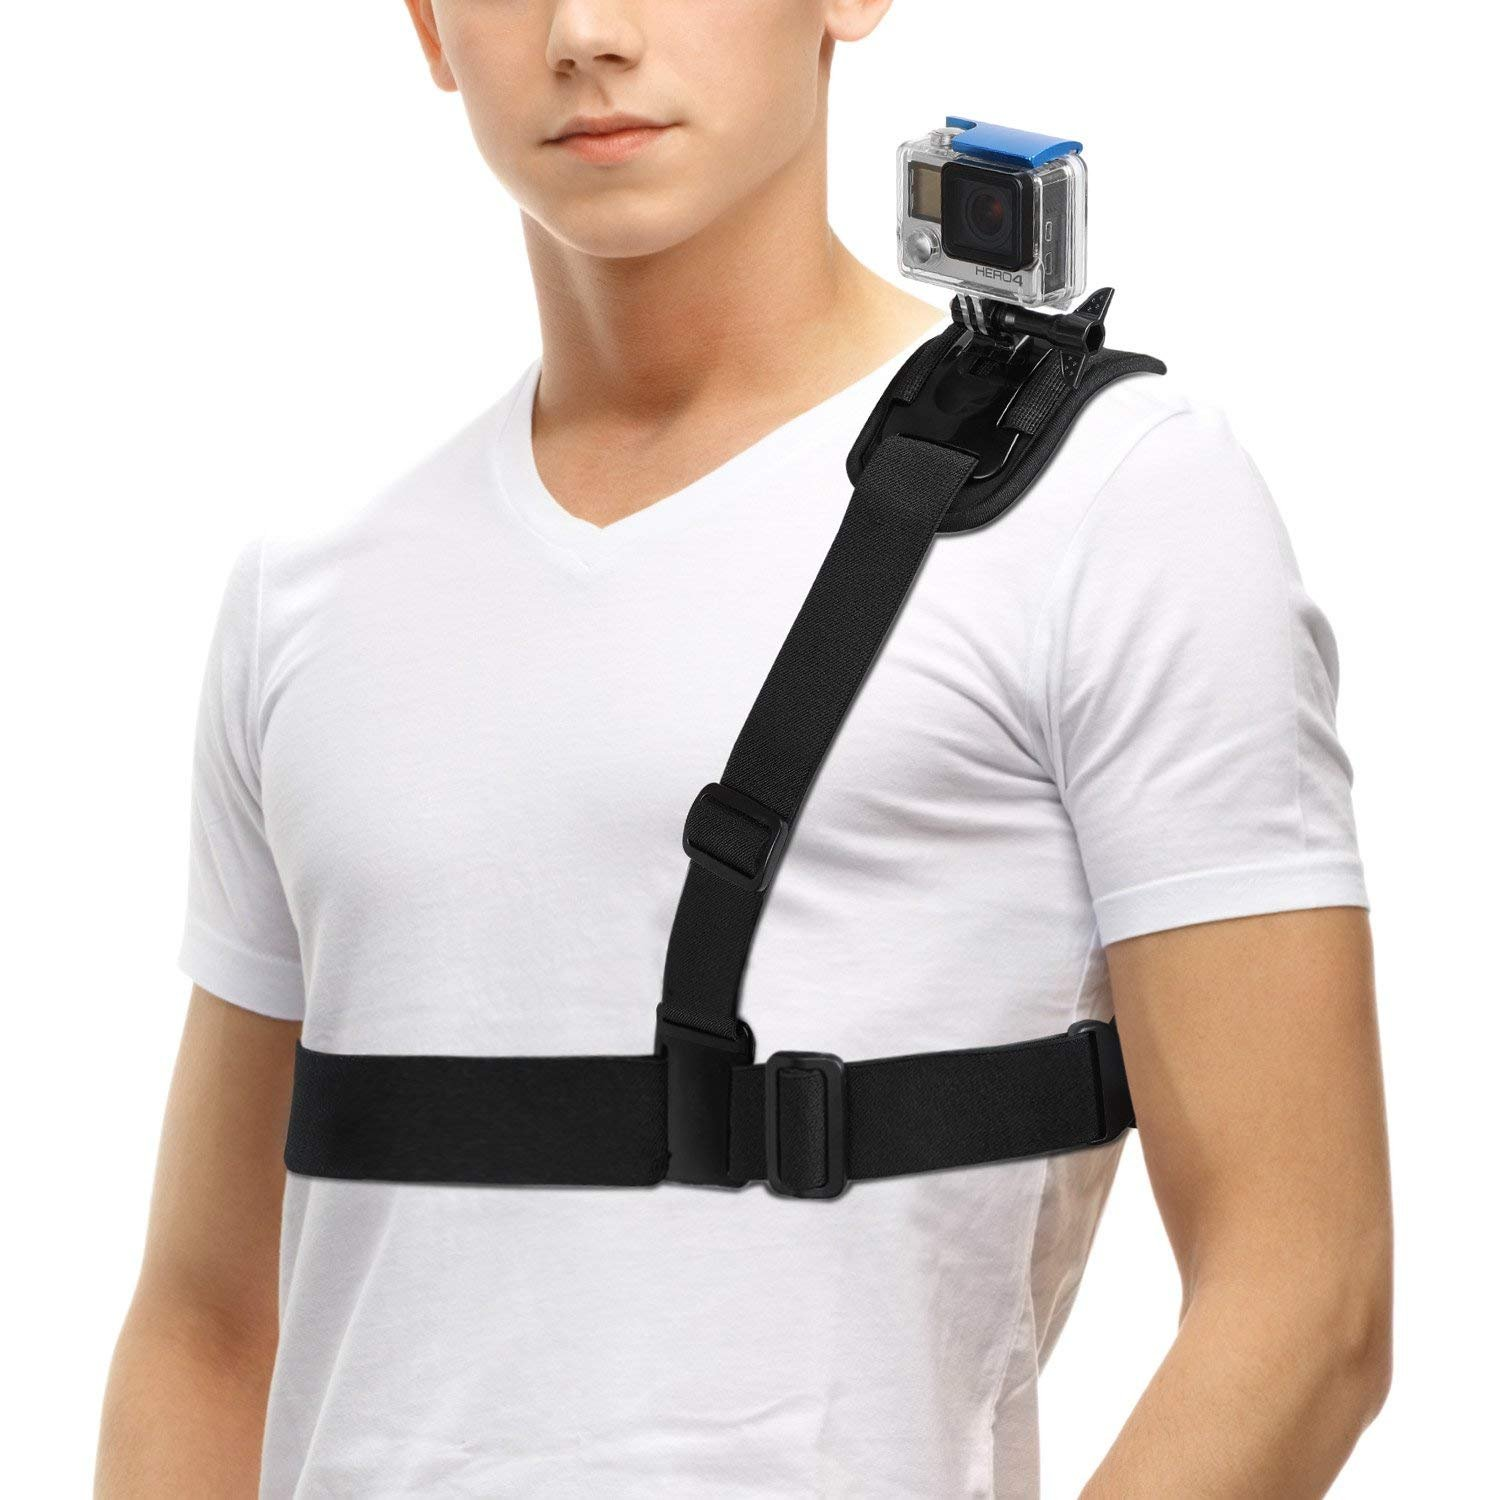 TELESIN Waist Strap Camera Mount Support with Frame for Polaroid Cube and Cube+